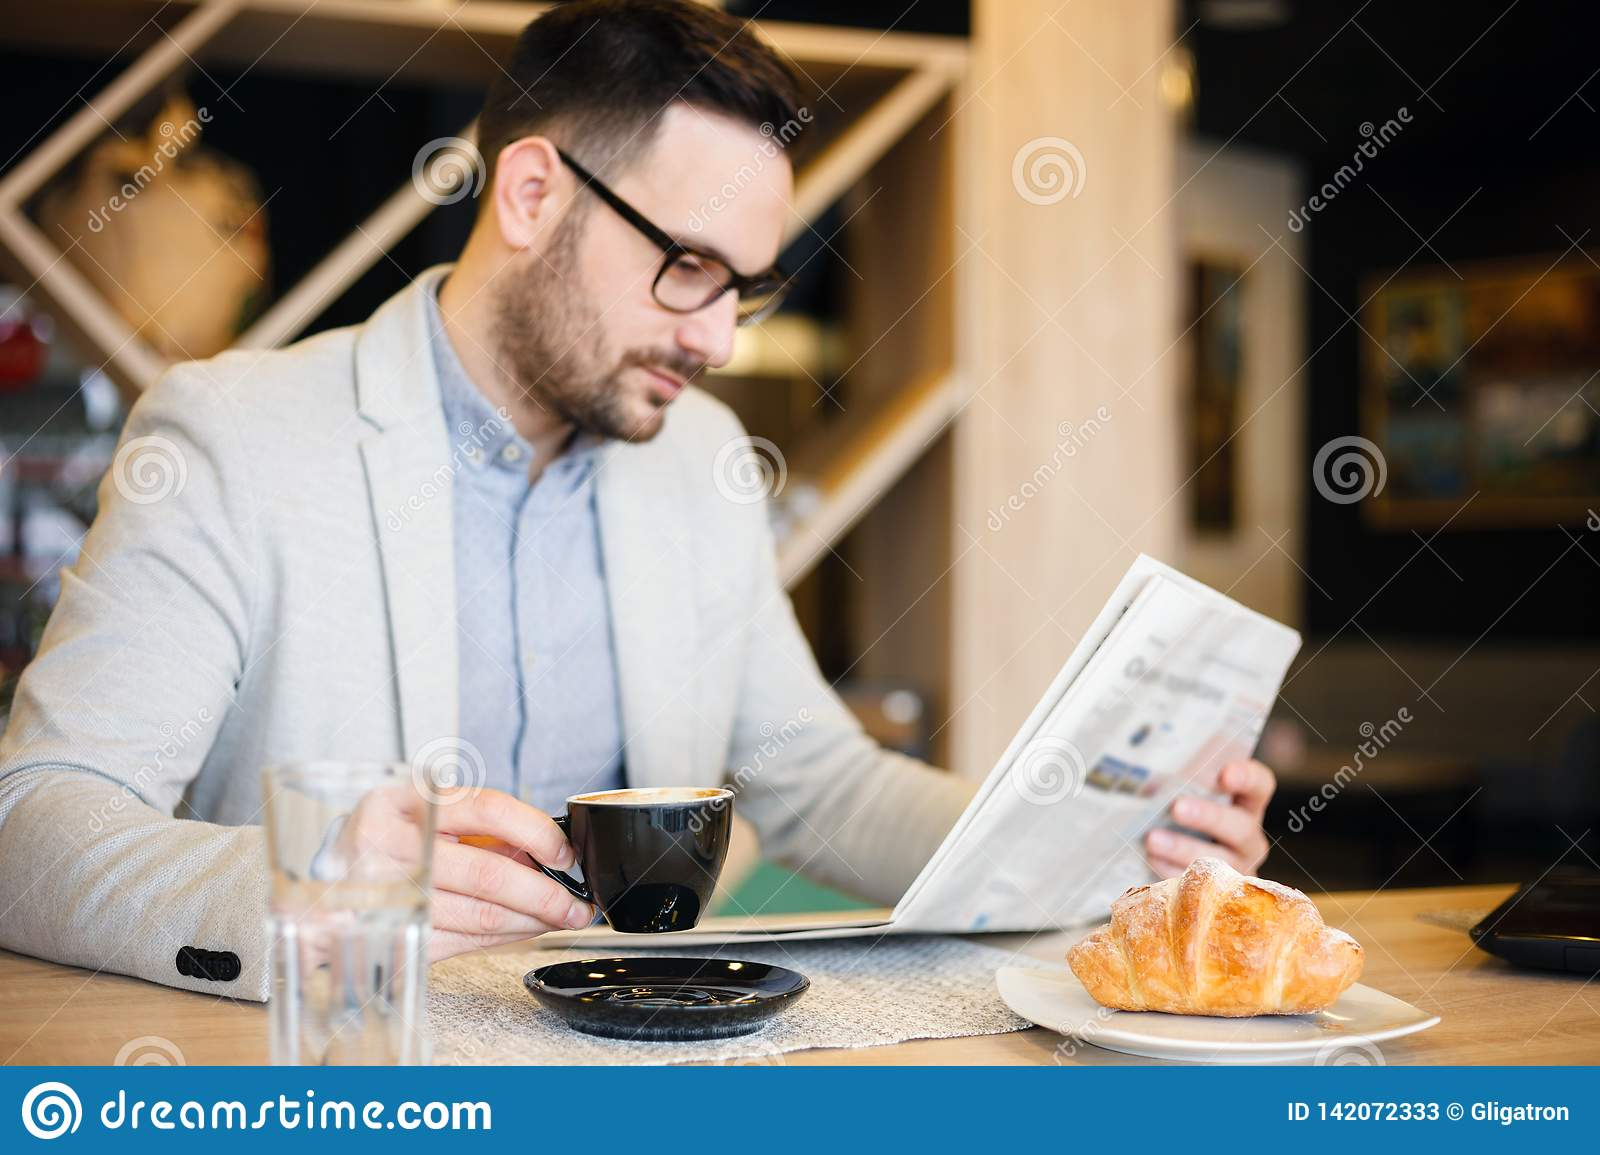 Young architect reading newspapers and drinking coffee in a modern cafe. Work anywhere concept